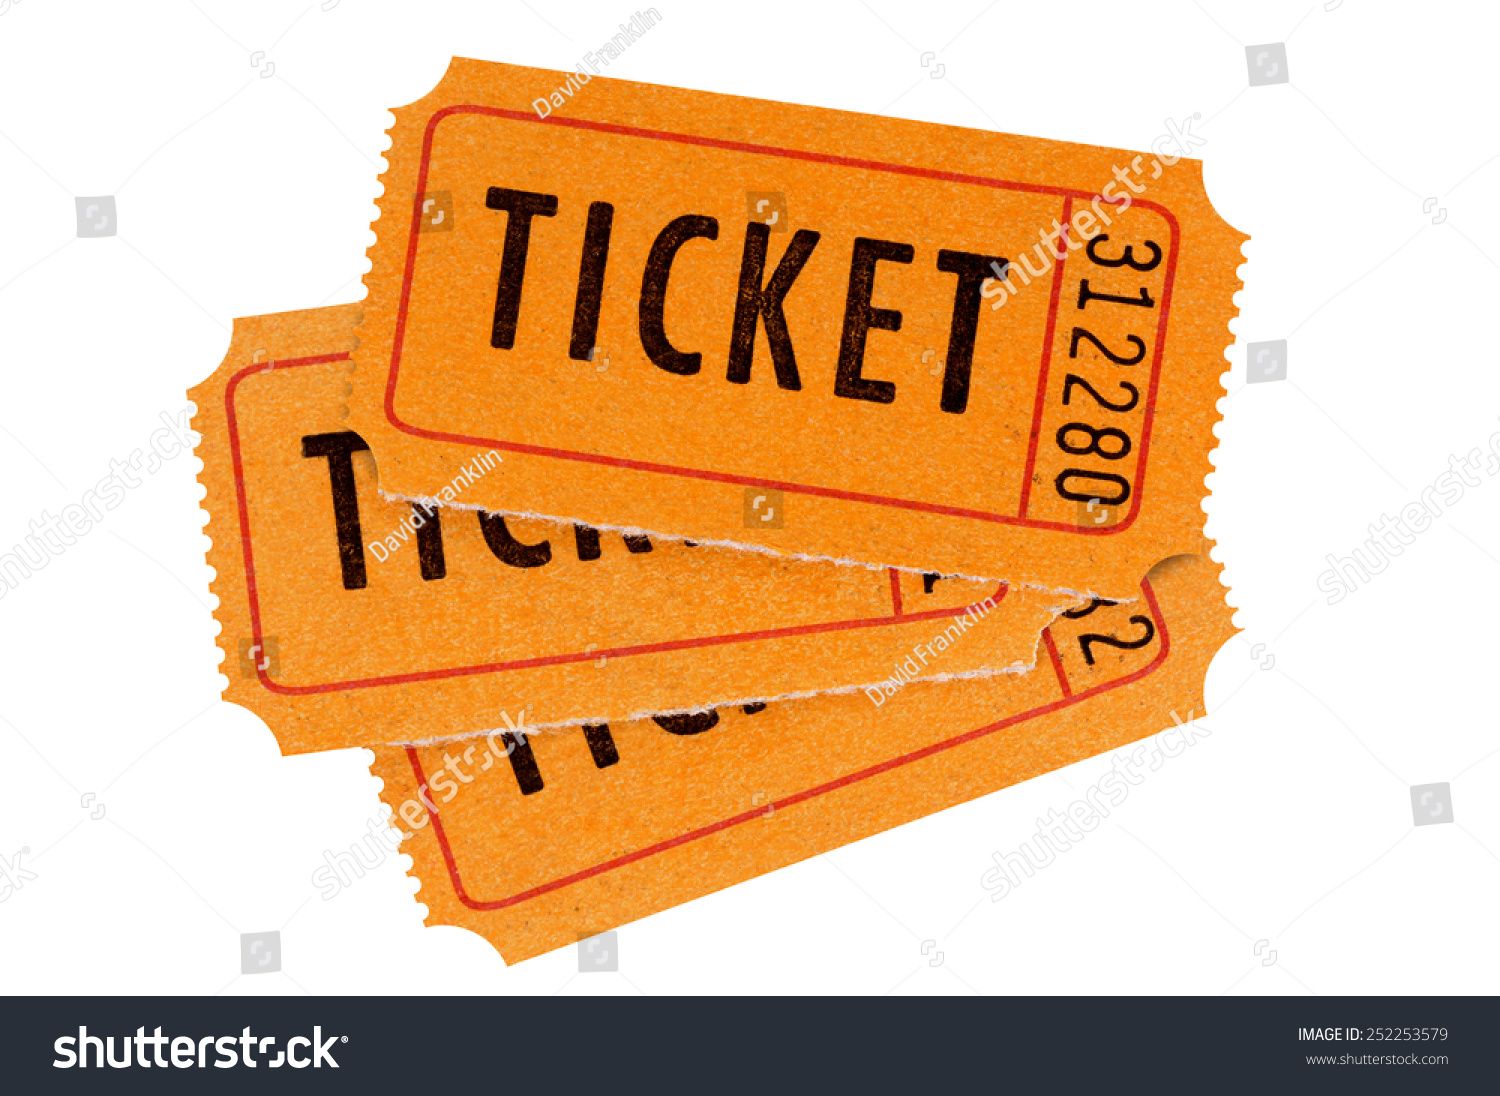 raffle ticket fan shape stack three stock photo  raffle ticket fan shape stack of three orange raffle or movie tickets isolated on white